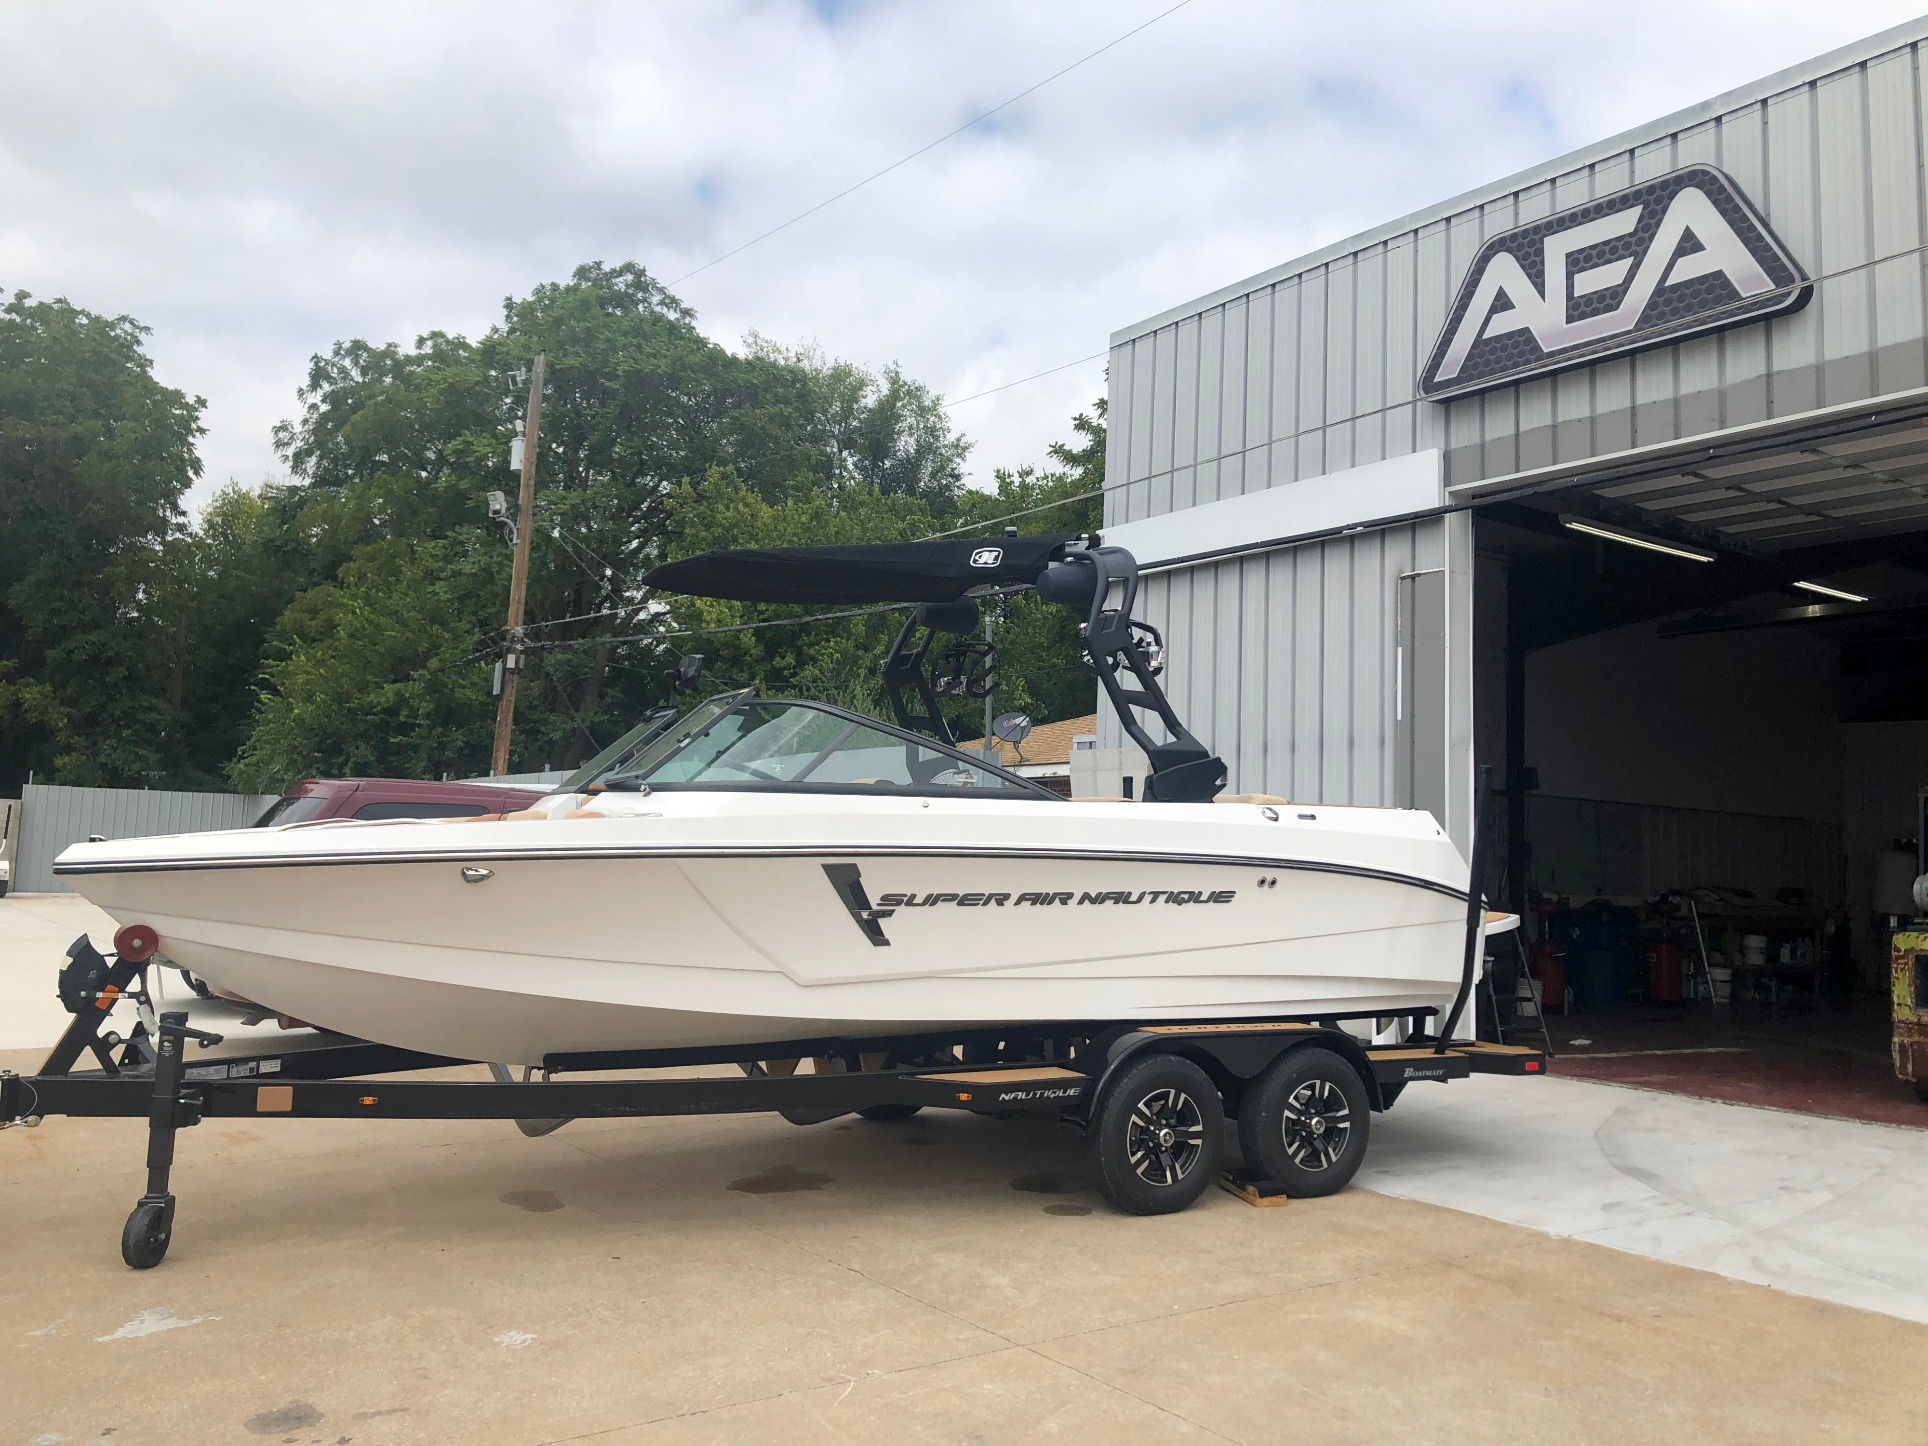 2019 Super Air Nautiqe 210 for sale in Wichita, Kansas at All Elements Auto and Marine